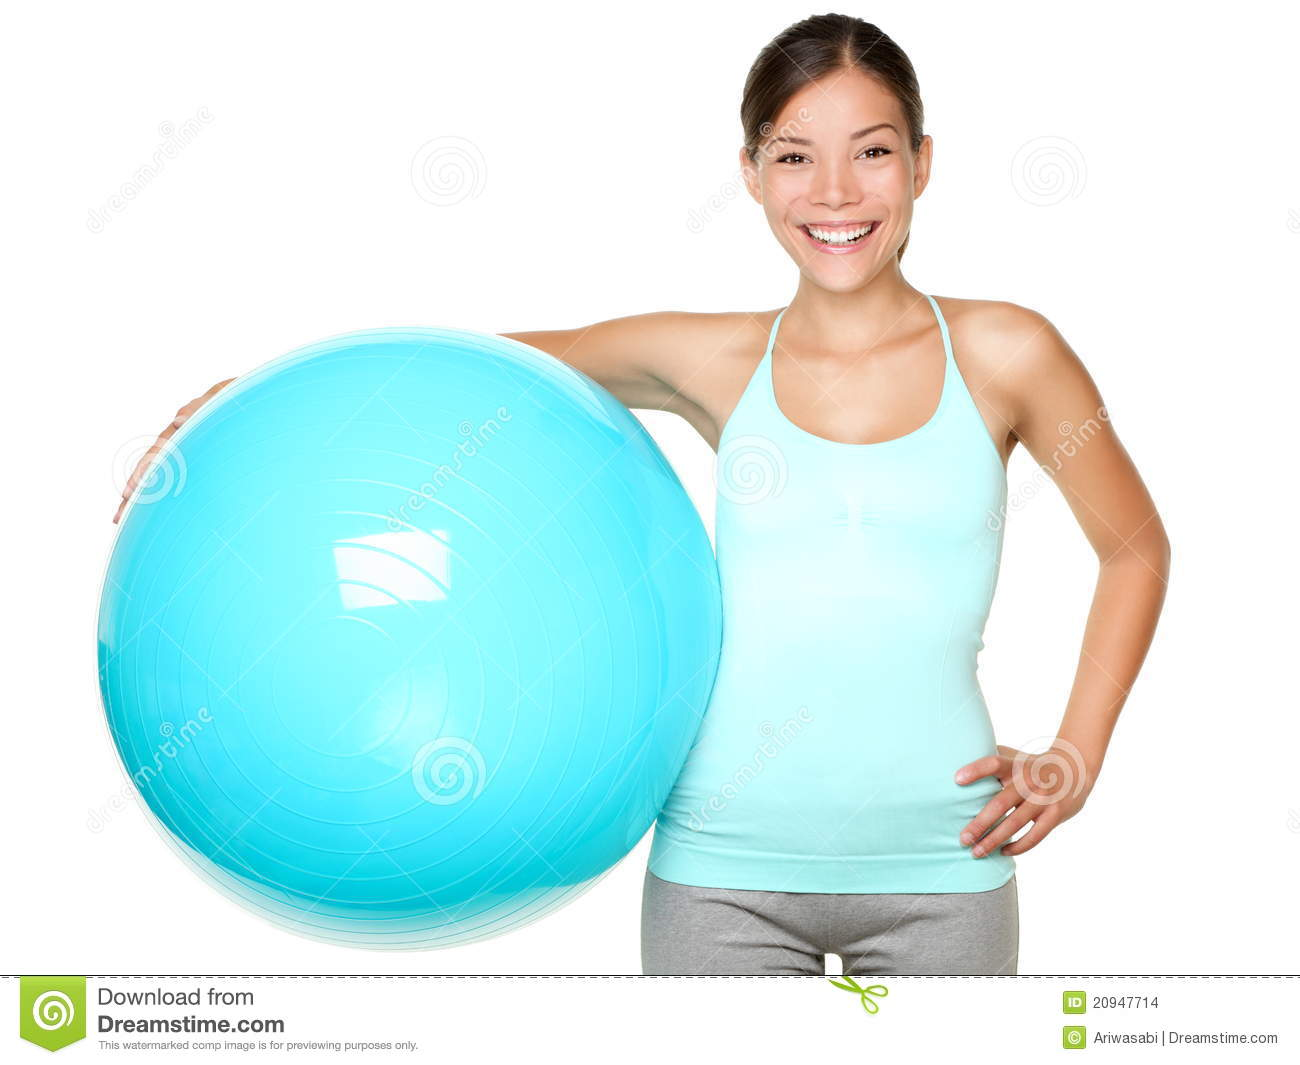 Fitness Woman Holding Pilates Ball Stock Images - Image: 20947714